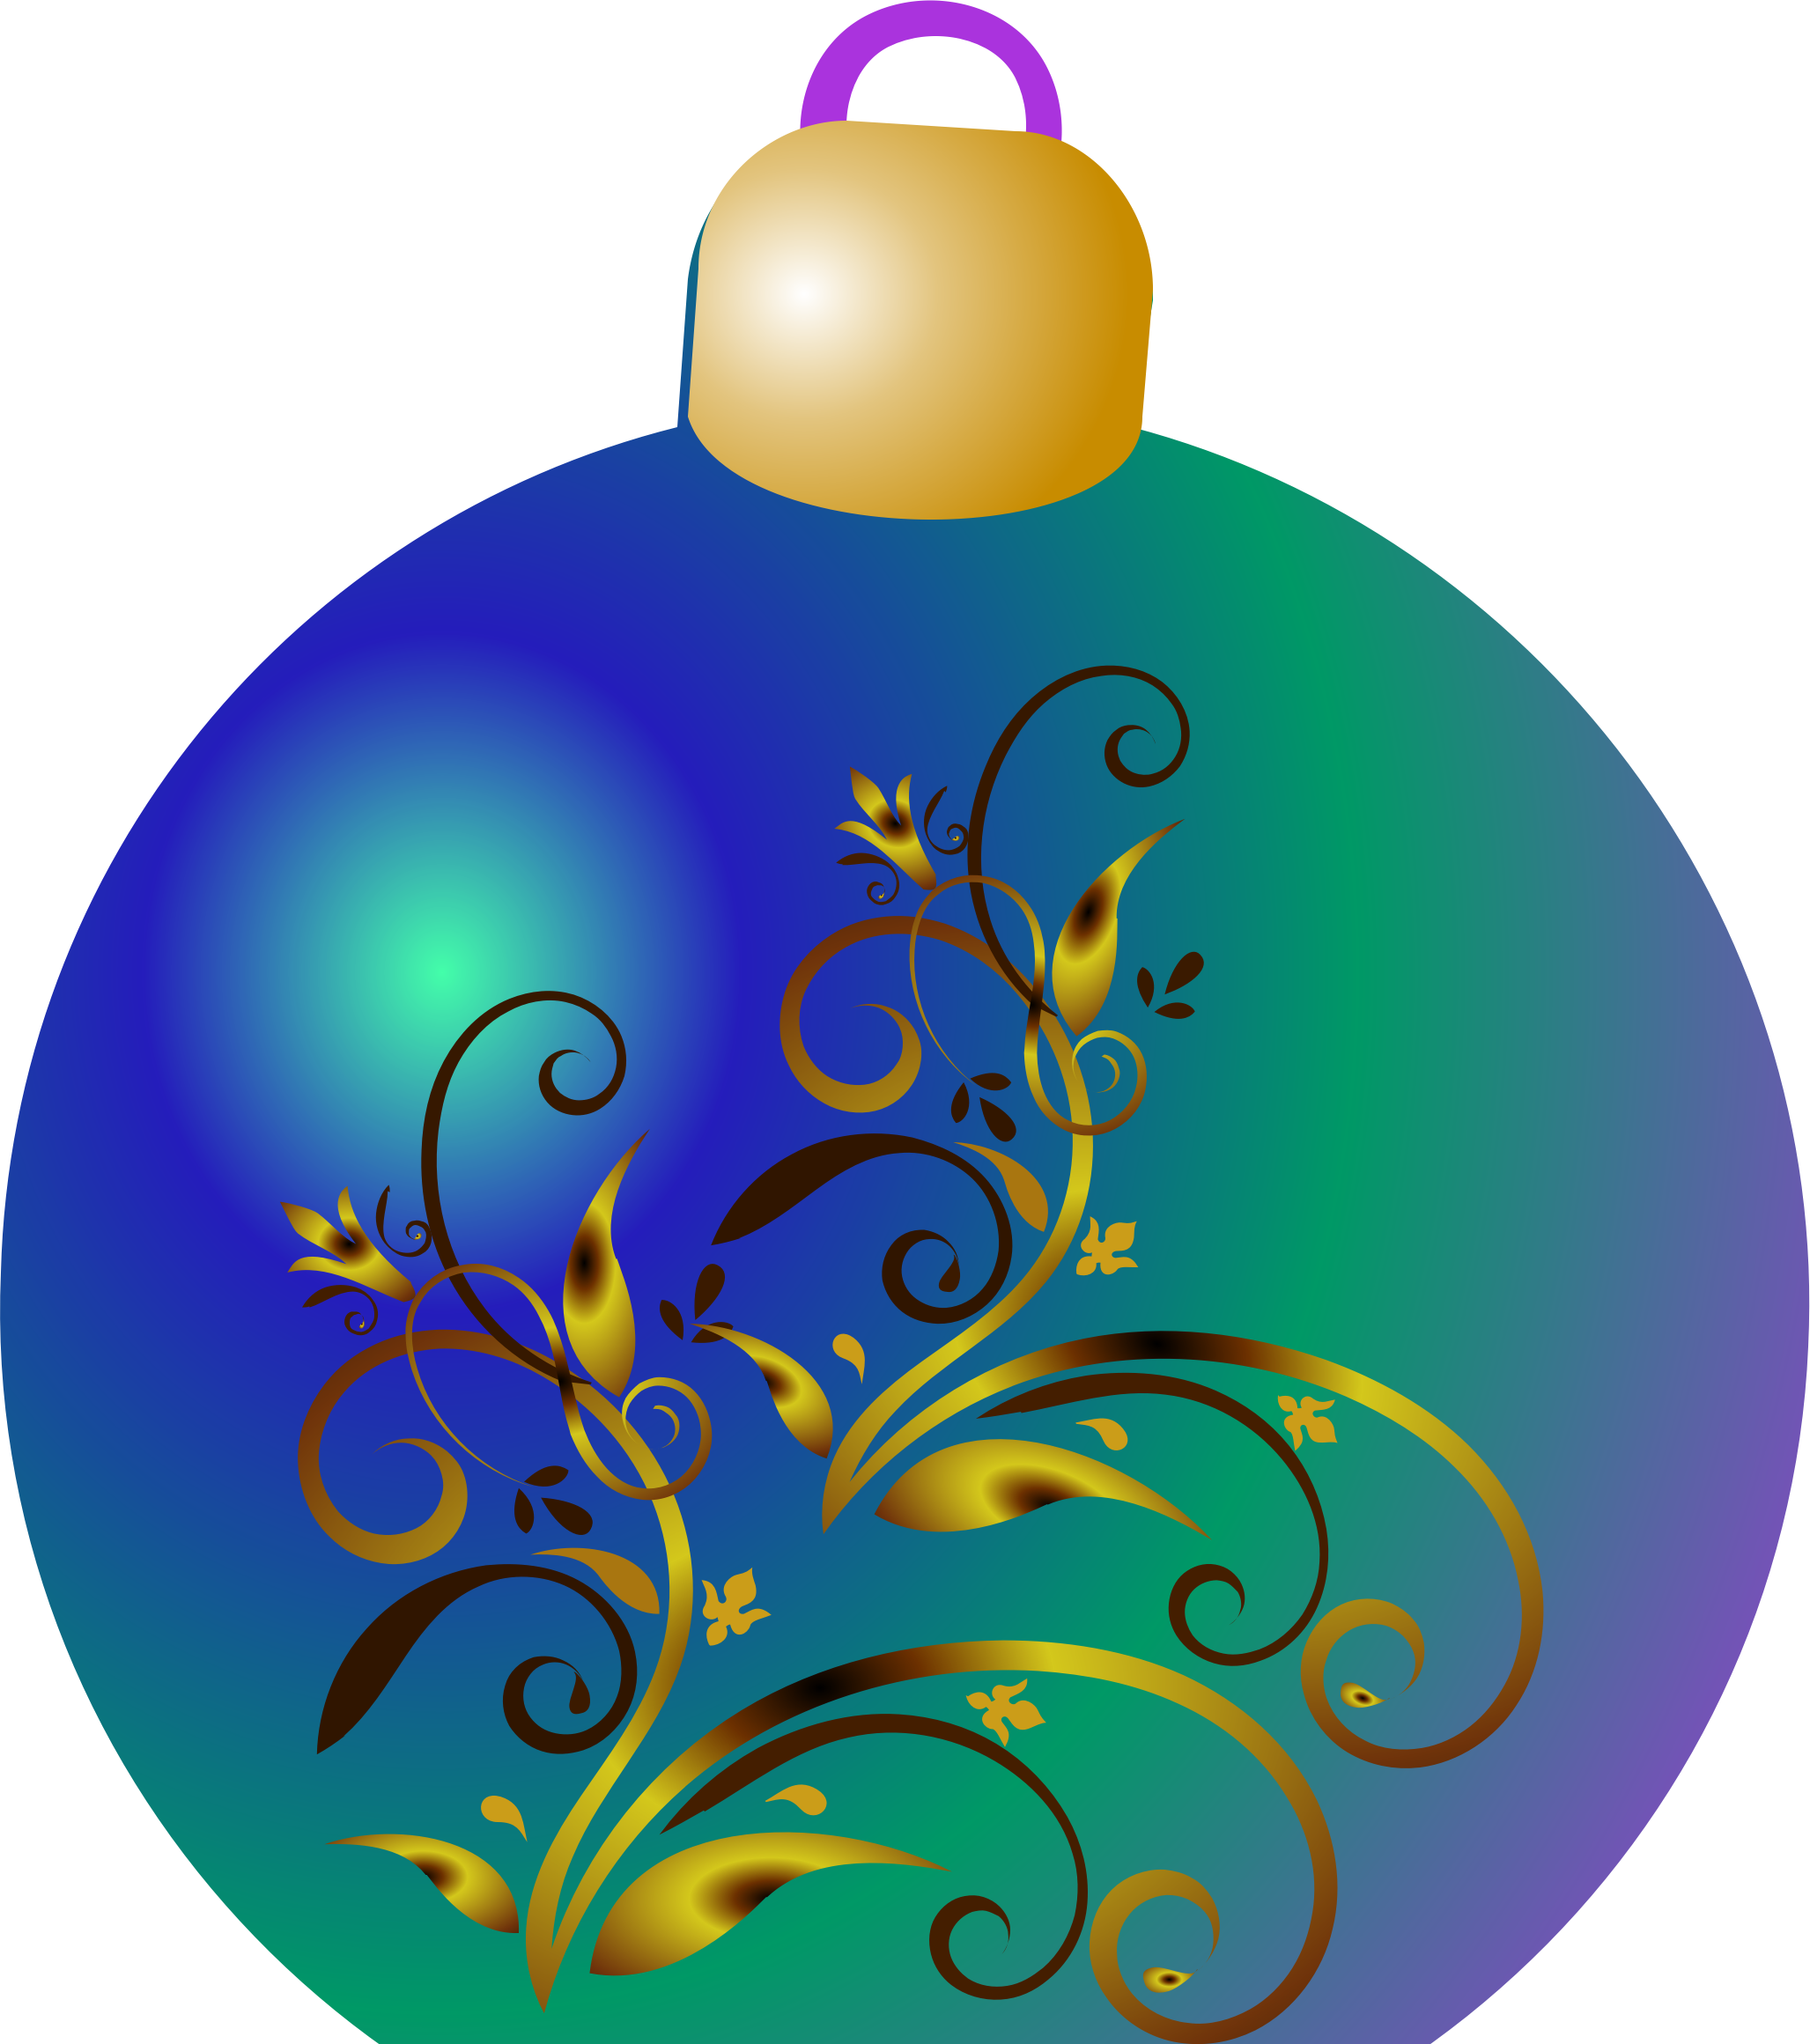 Clipart christmas ornament graphic download Clipart - Christmas ornament graphic download